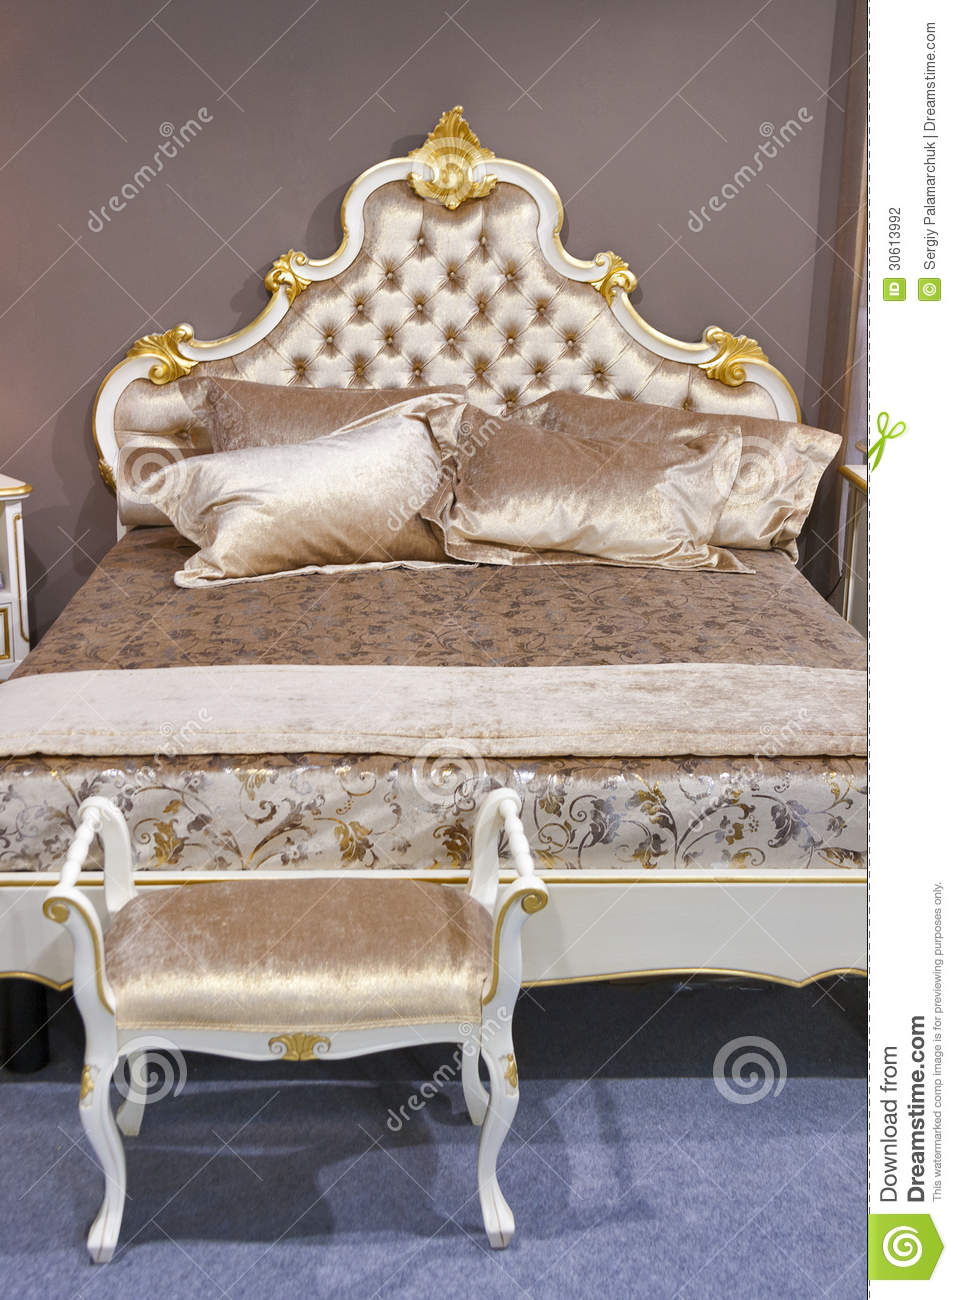 Chambre coucher baroque photographie stock image 30613992 for Chambre a coucher baroque